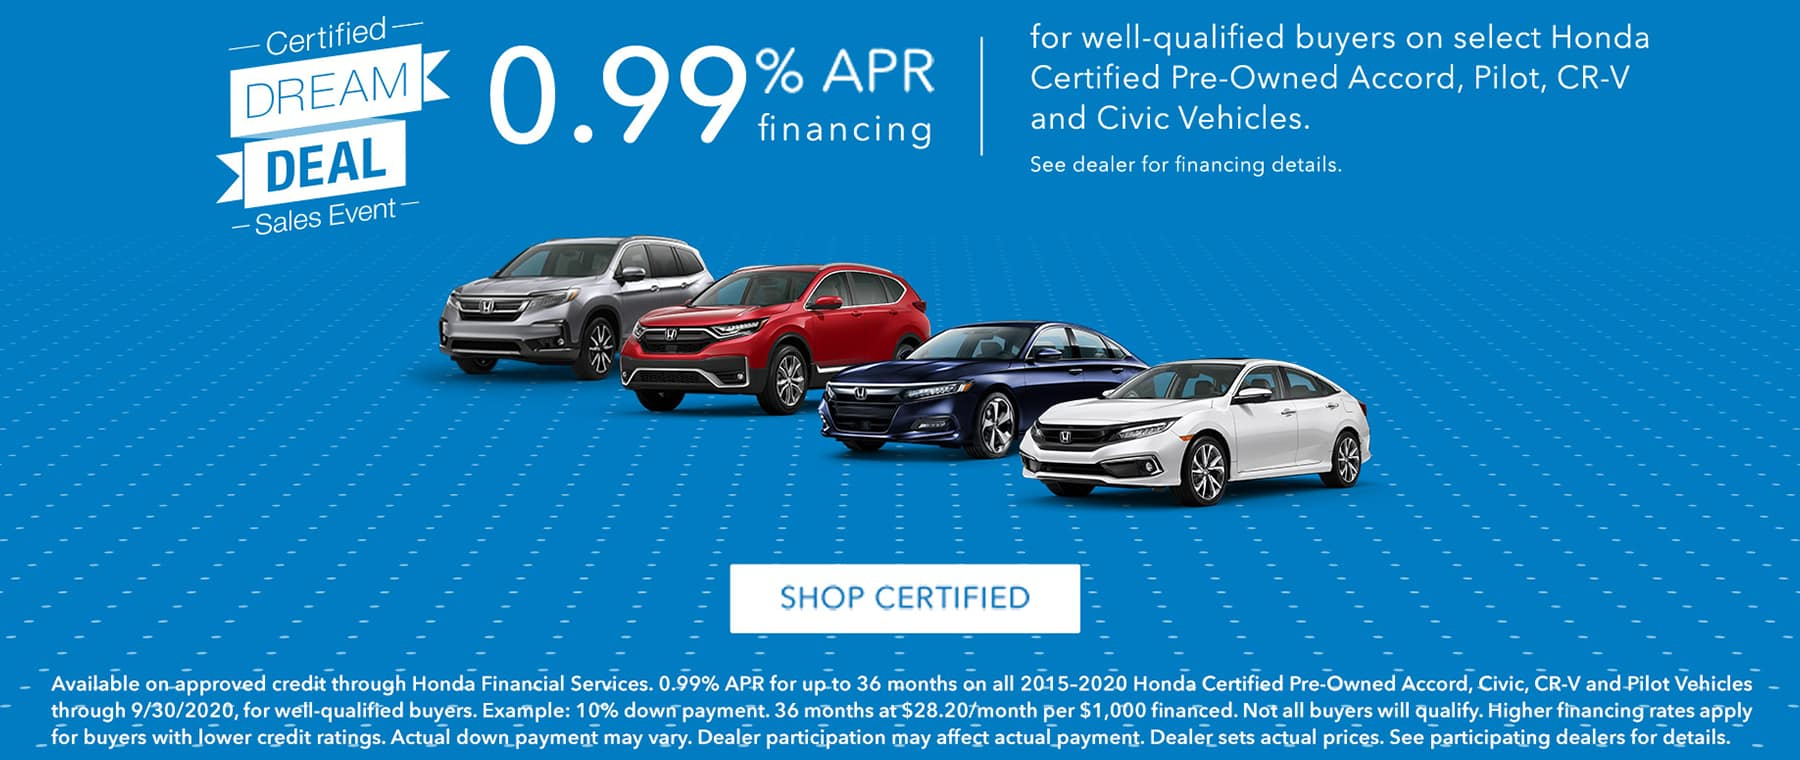 Certified Dream Deal Sales Event – 0.99% APR on select CPO Accord, Pilot, CR-V and Civic vehicles